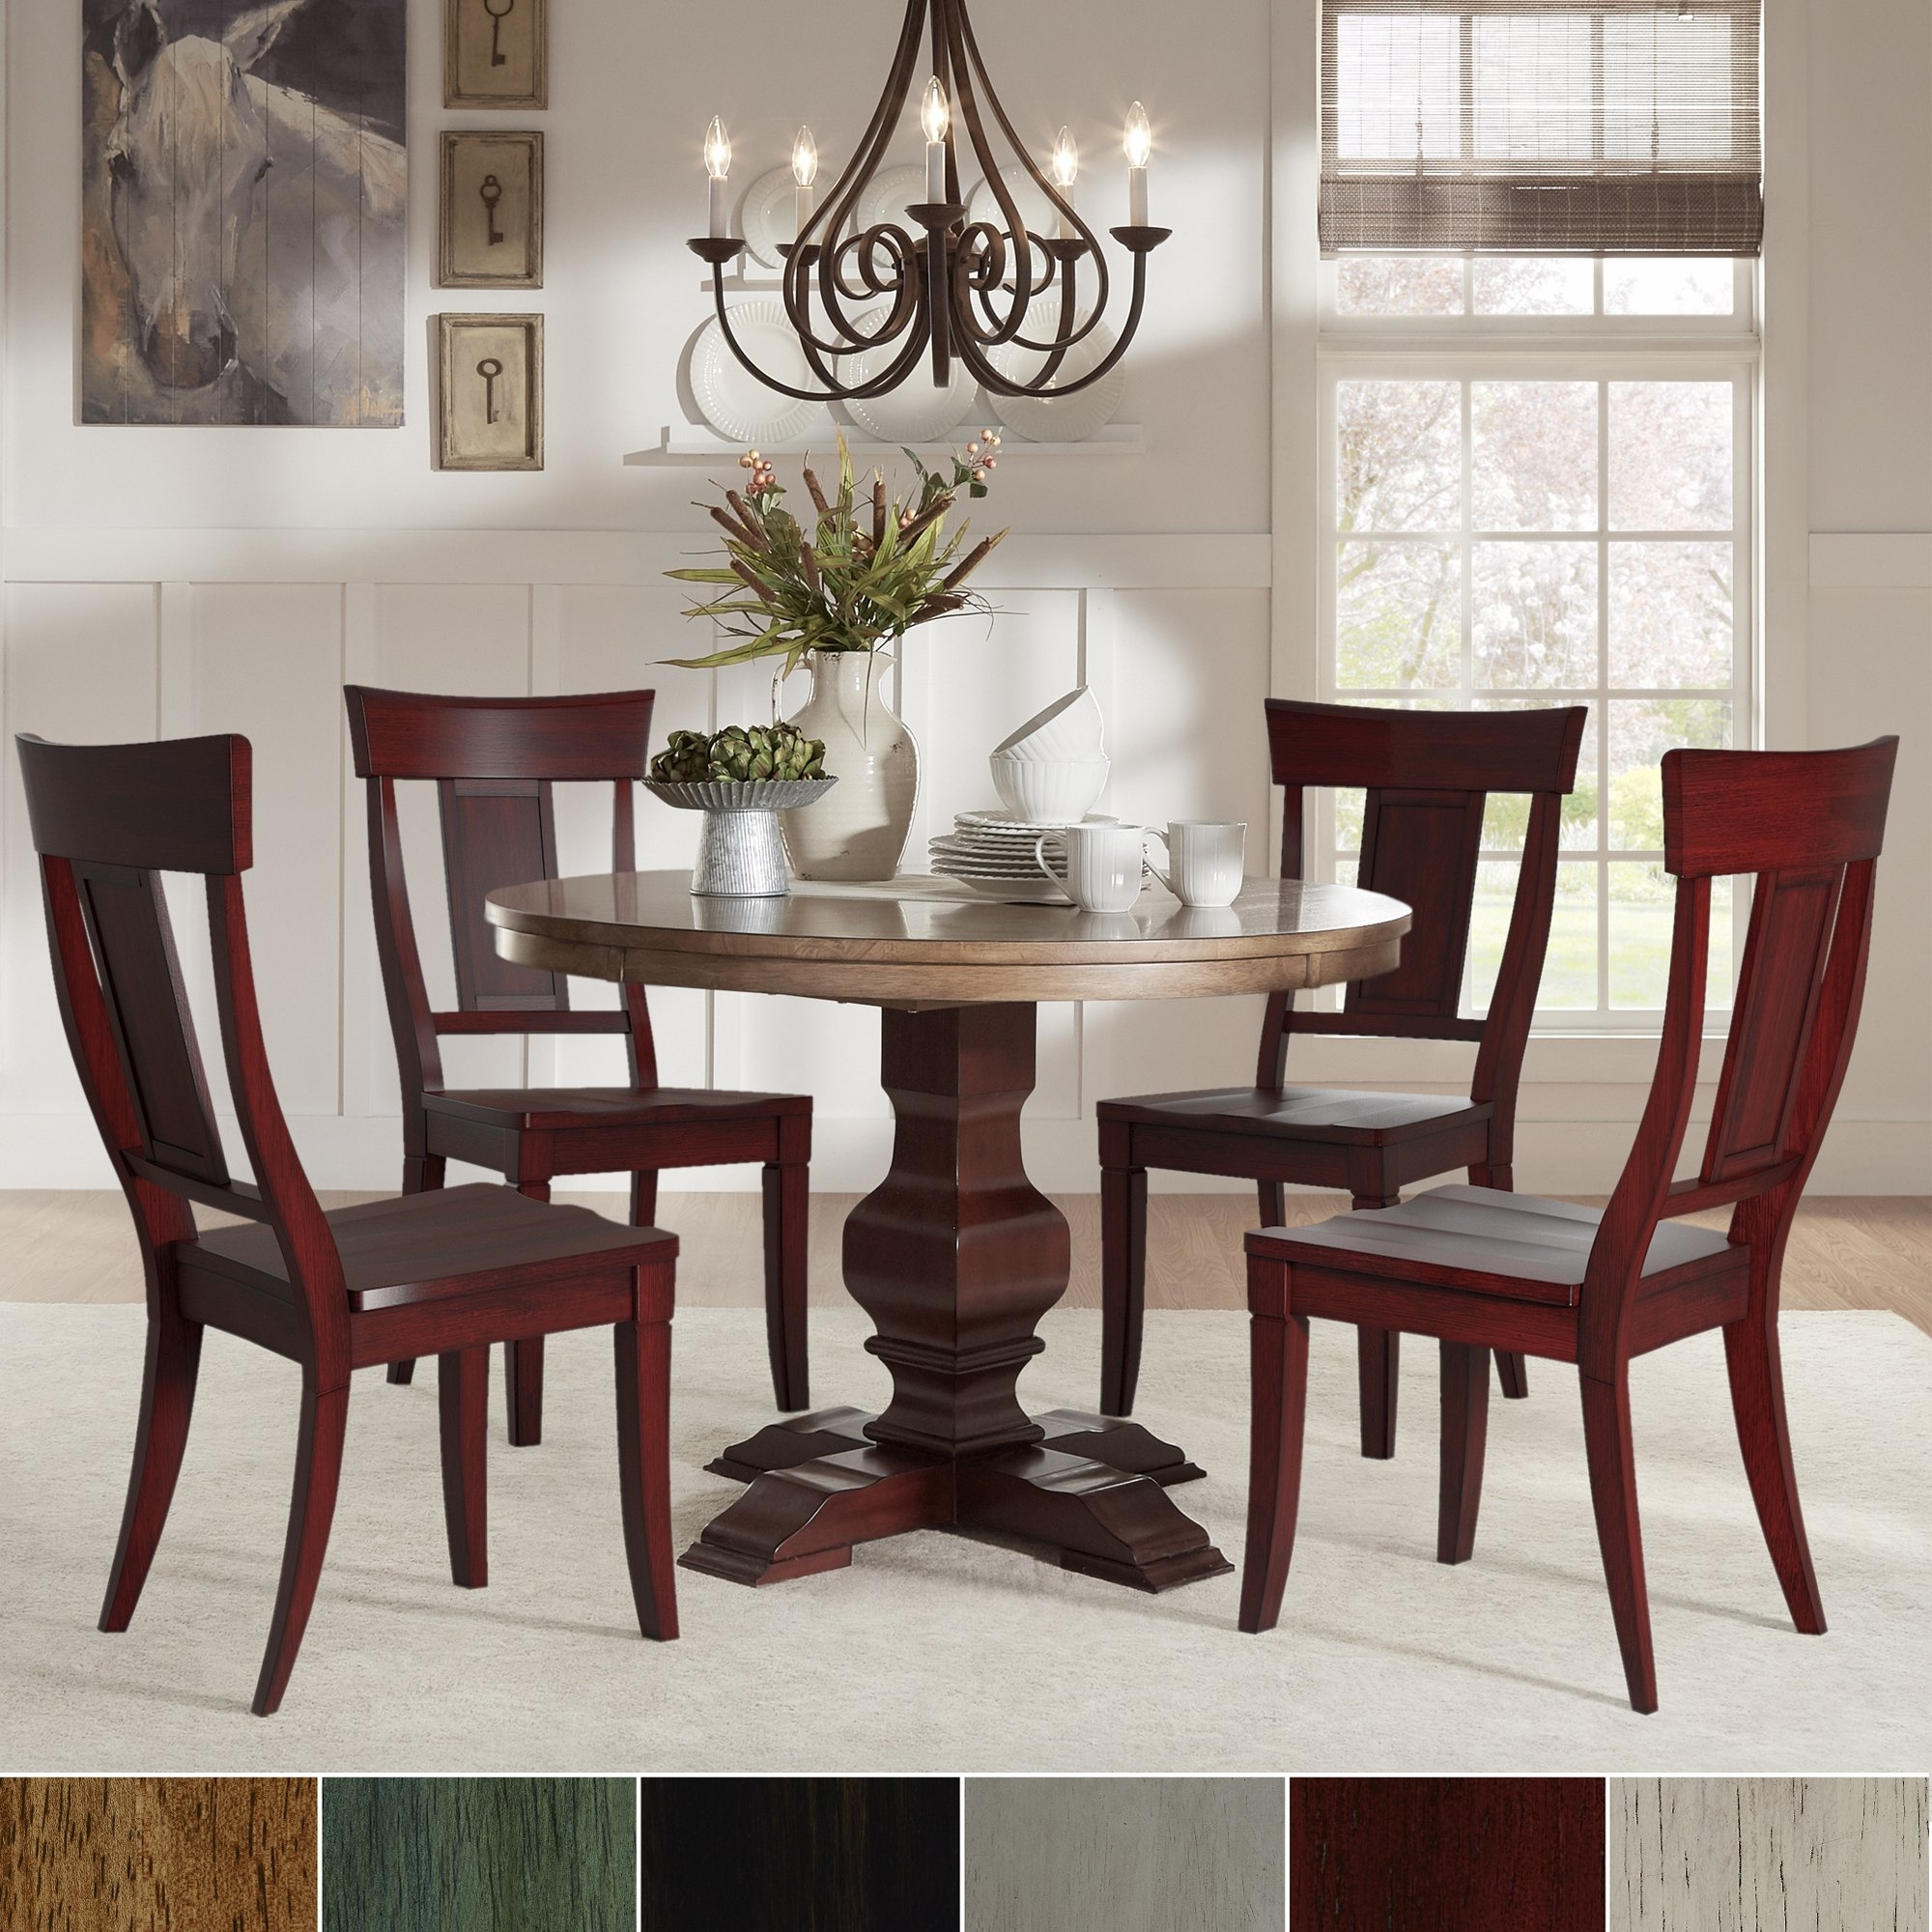 Eleanor Red Round Solid Wood Top 5 Piece Dining Set – Panel Back For Newest Caden 5 Piece Round Dining Sets (Image 10 of 20)